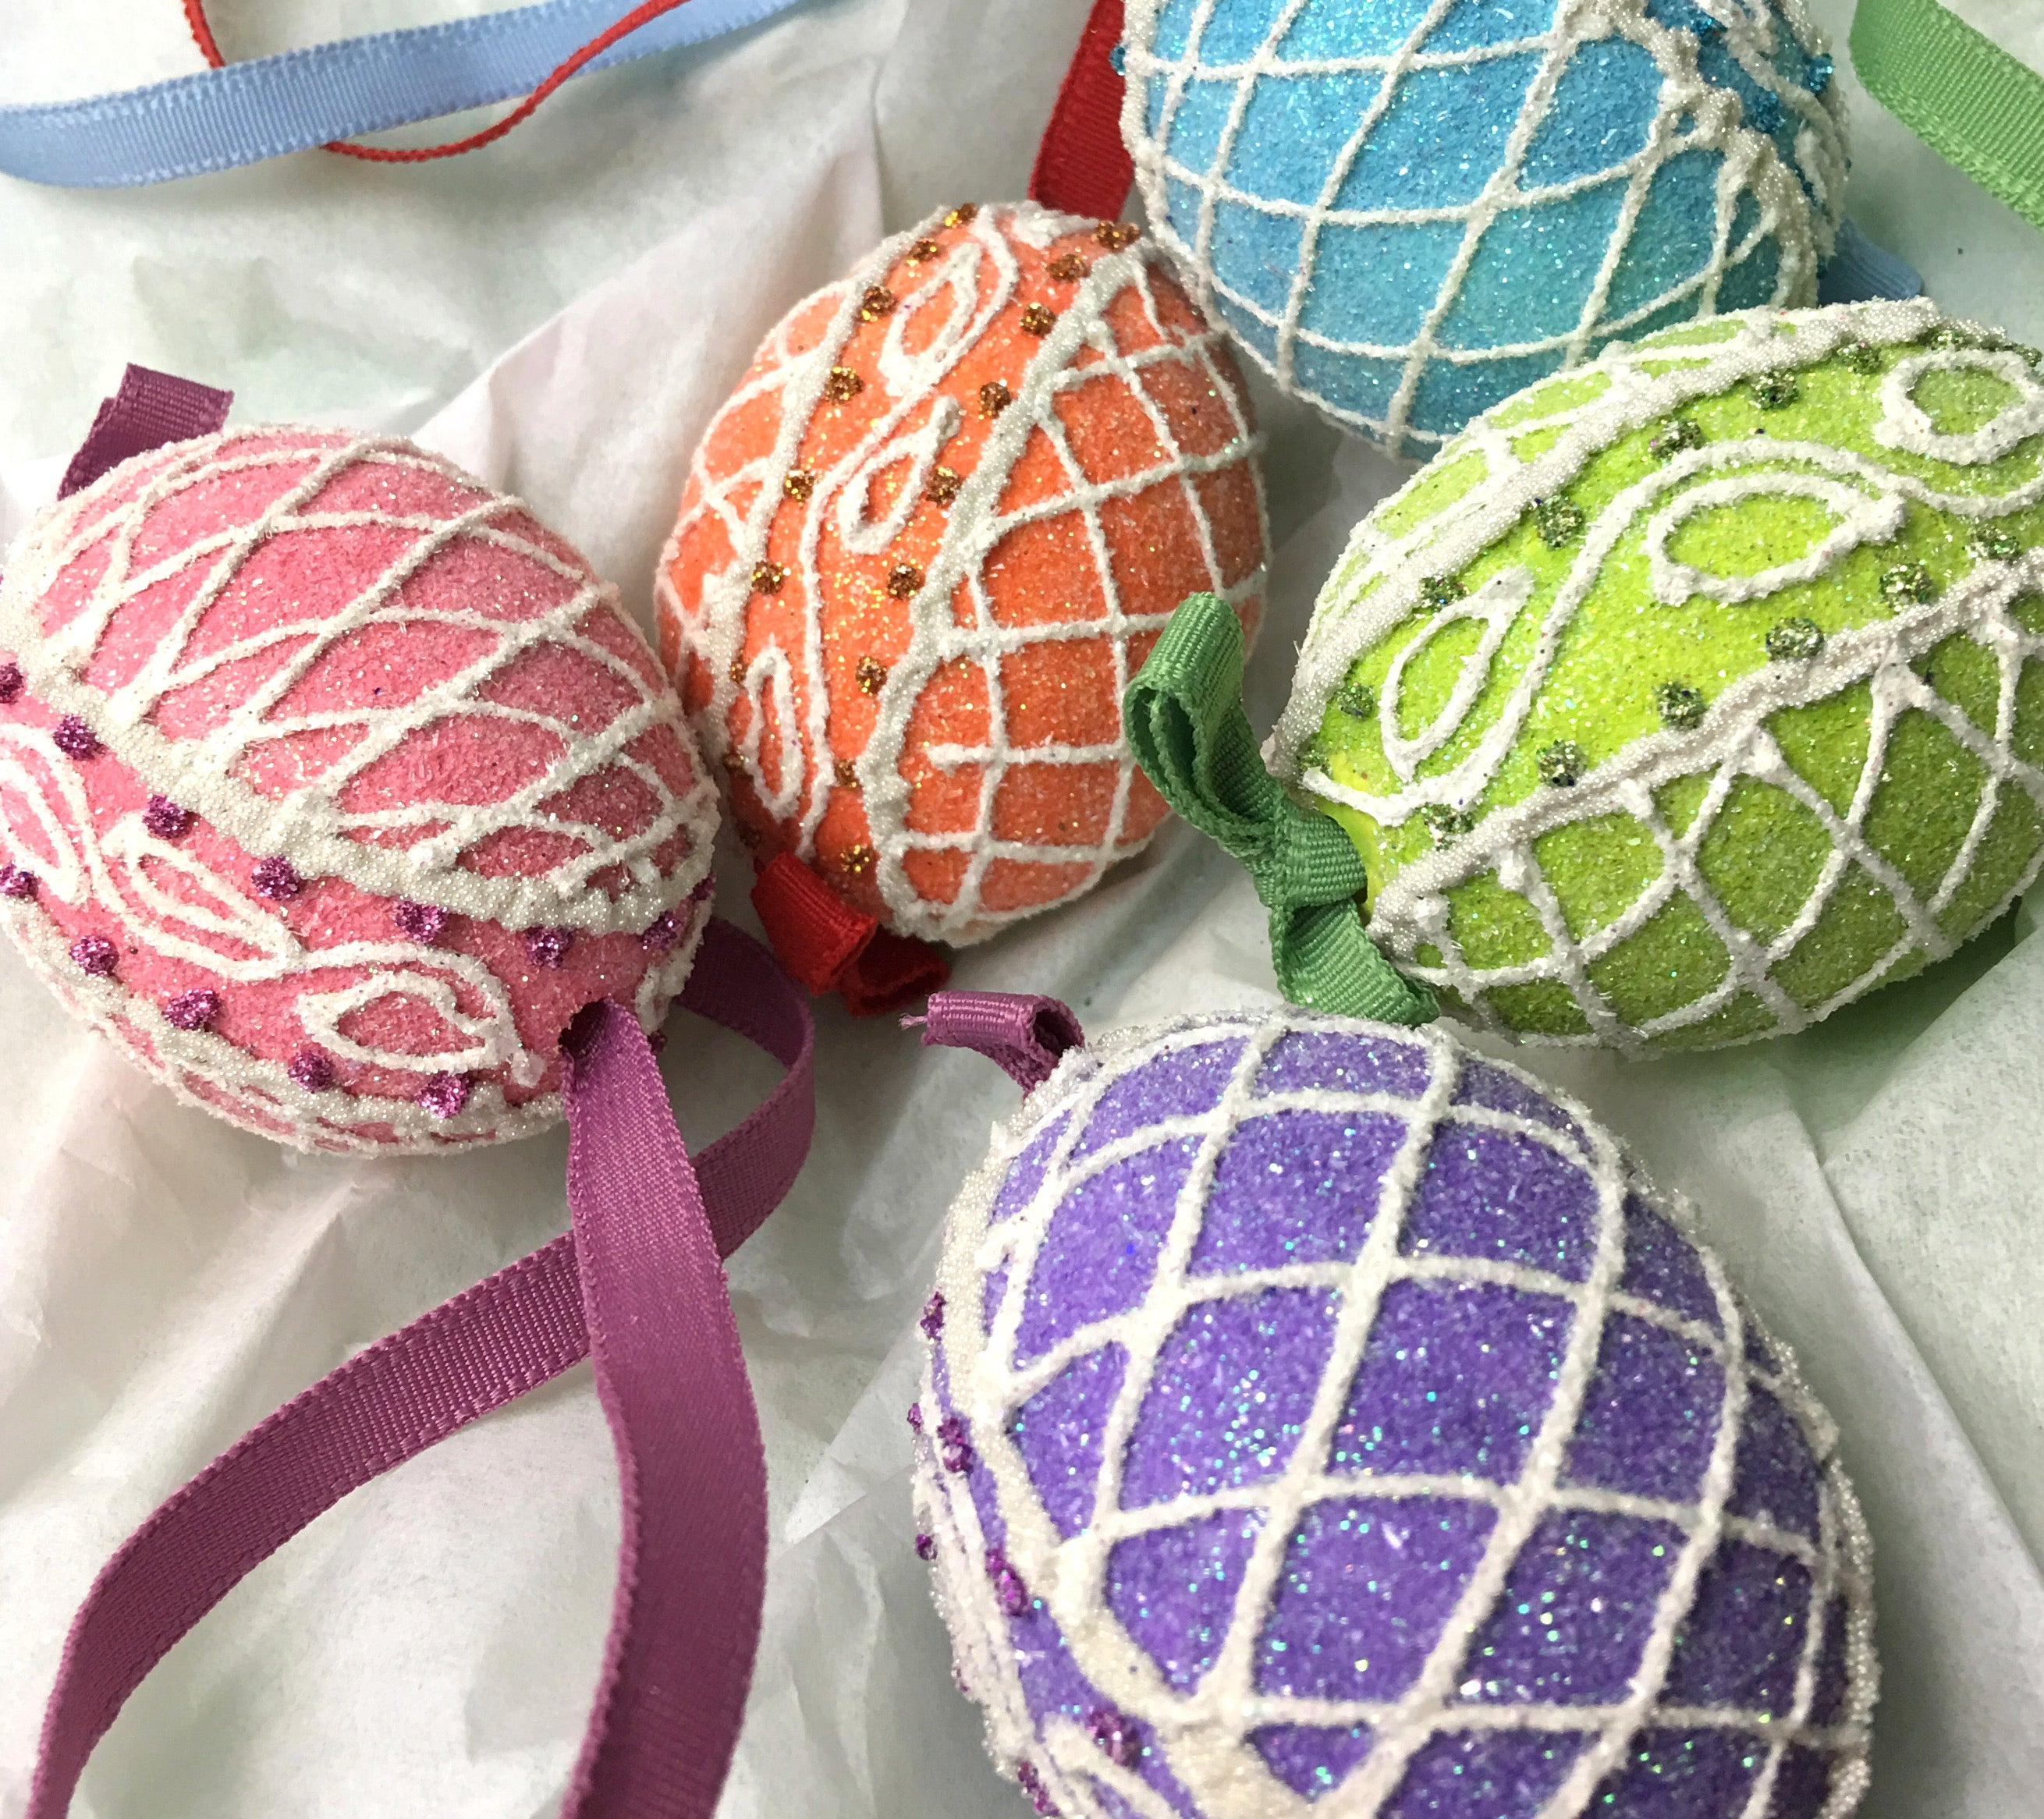 Easter Egg Ornaments Decorated Like Sugar Eggs